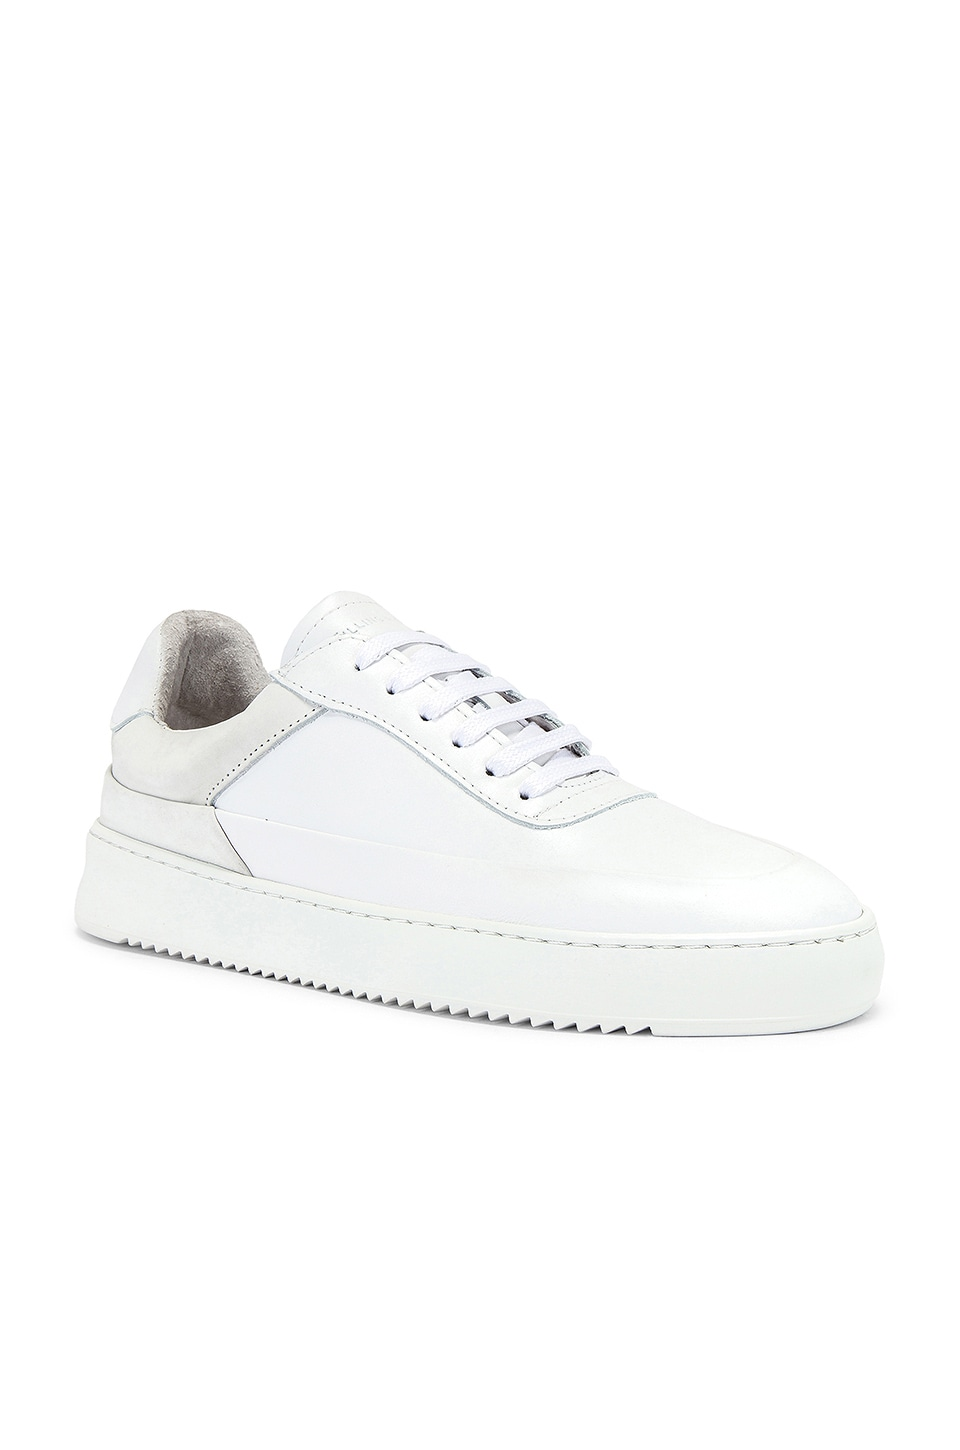 Filling Pieces Shift Sneaker in All White